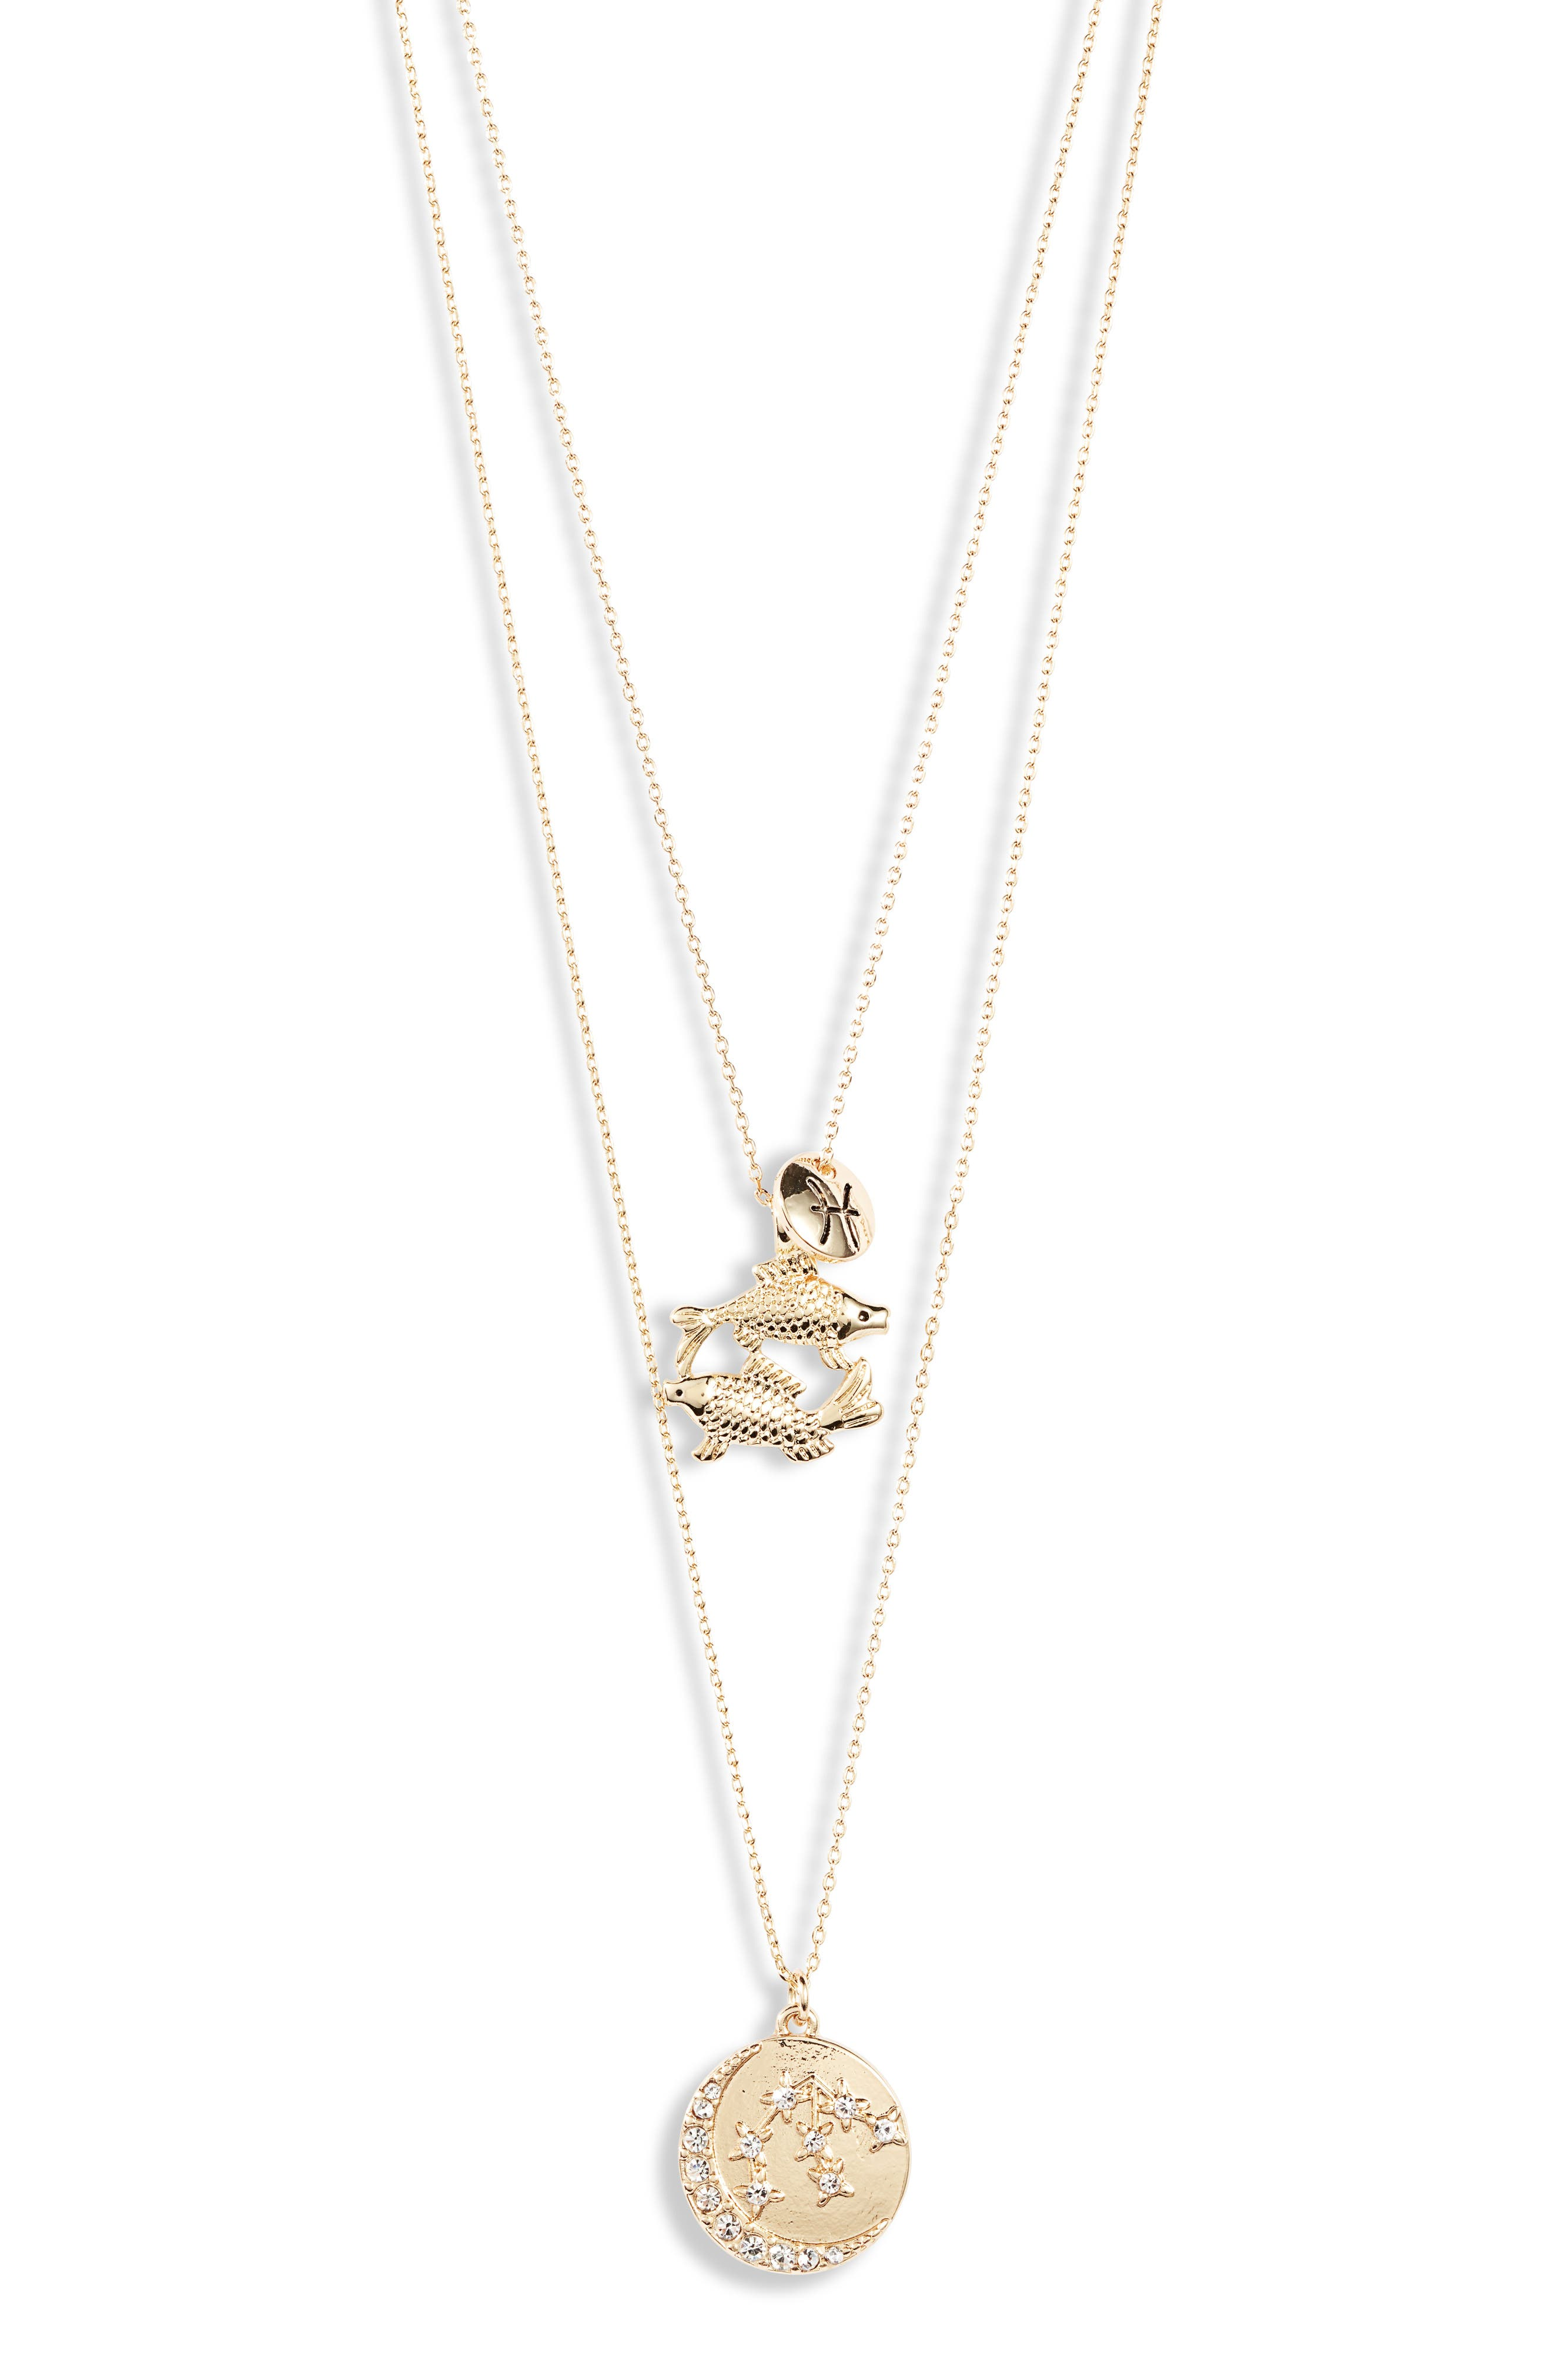 Pisces Astrological Charm Layered Necklace